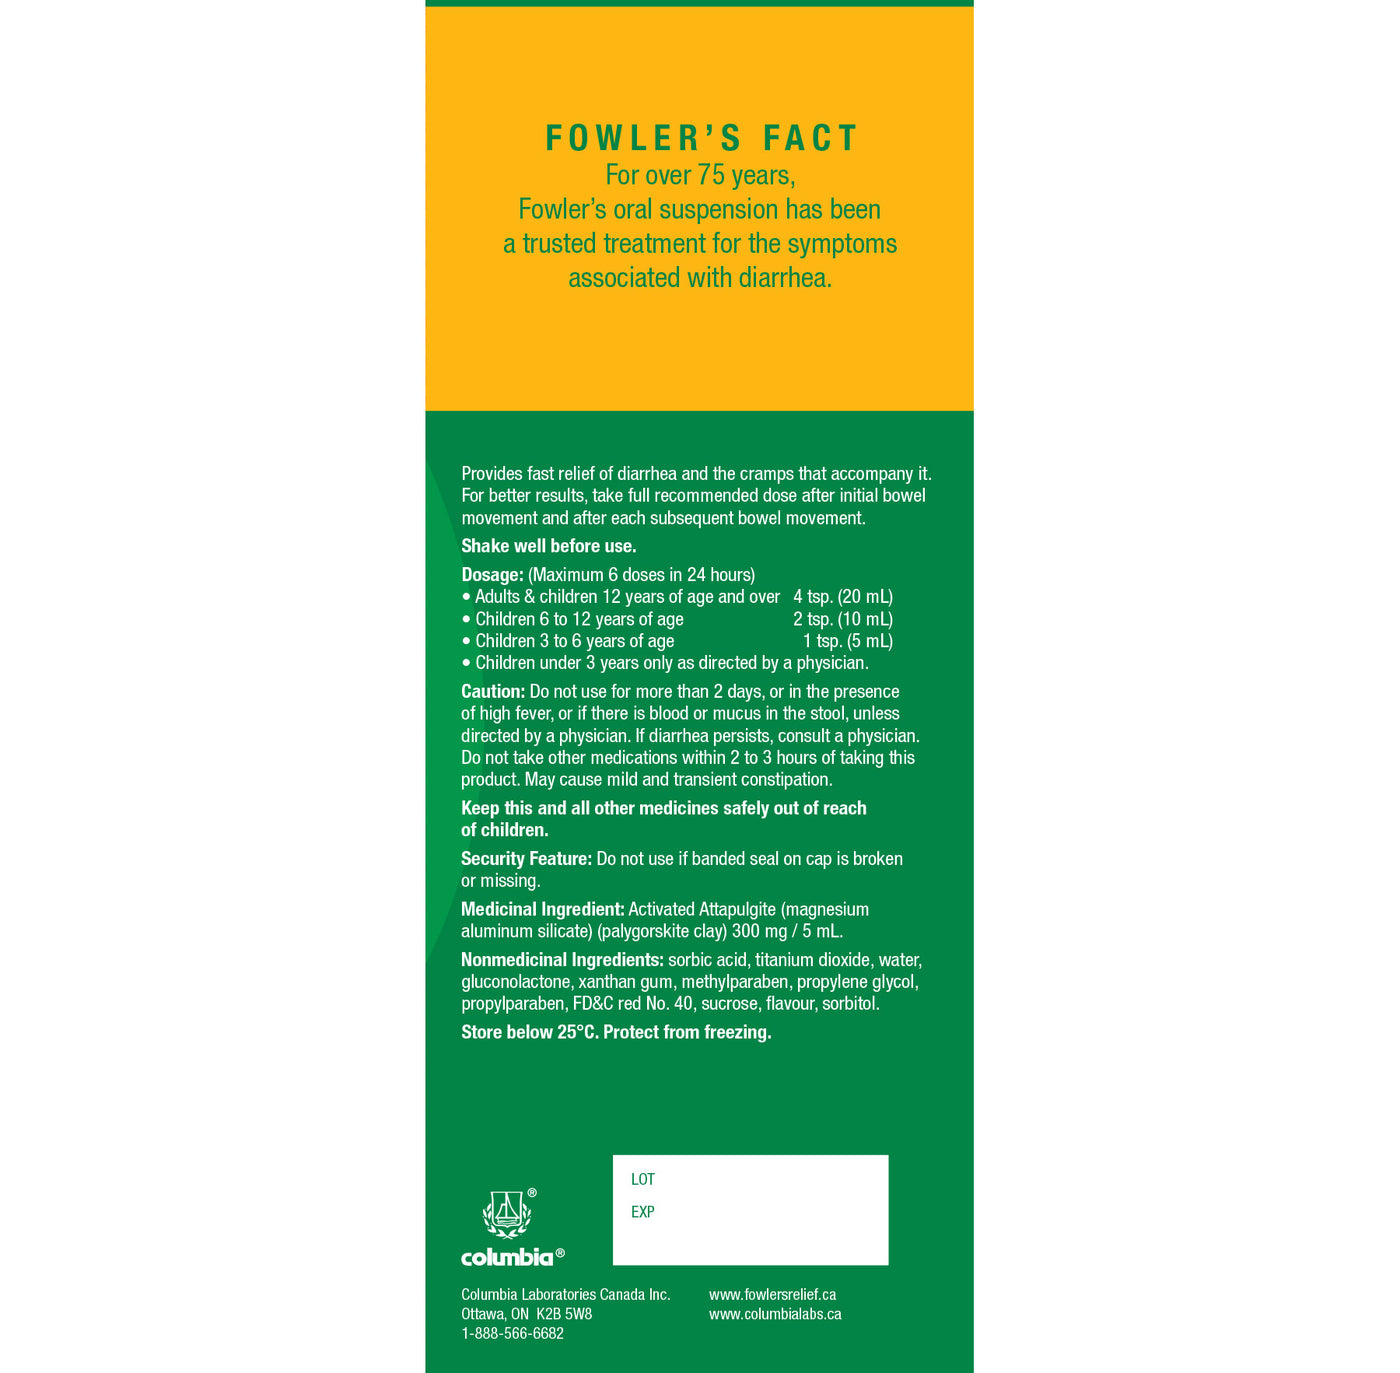 Fowler's Anti-Diarrheal Oral Suspension for Diarrhea and Cramps